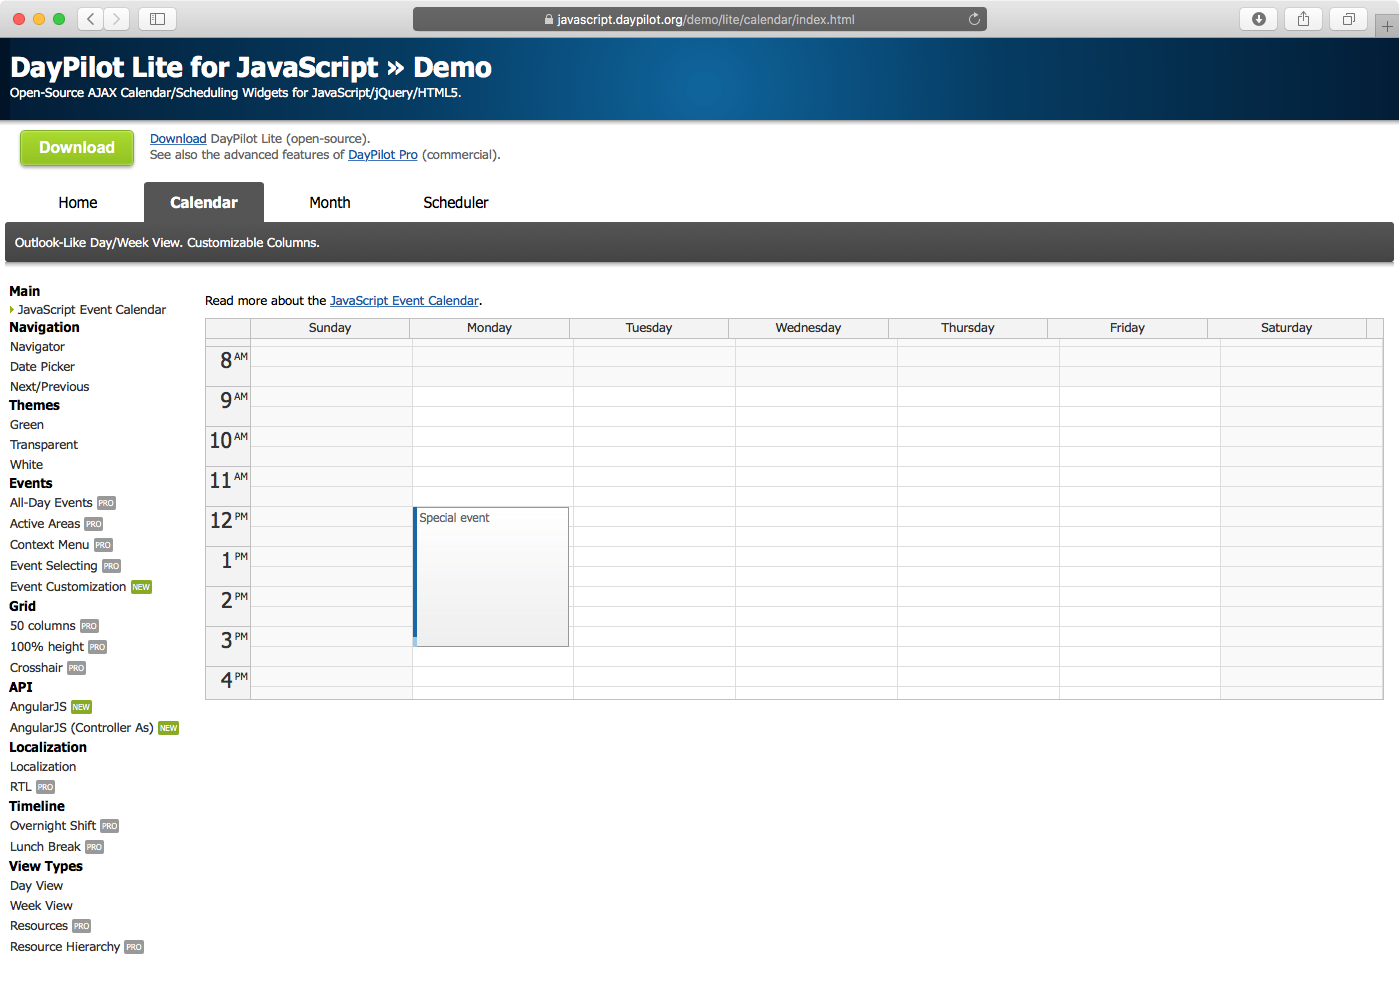 filemaker-webviewer-calendar-library6